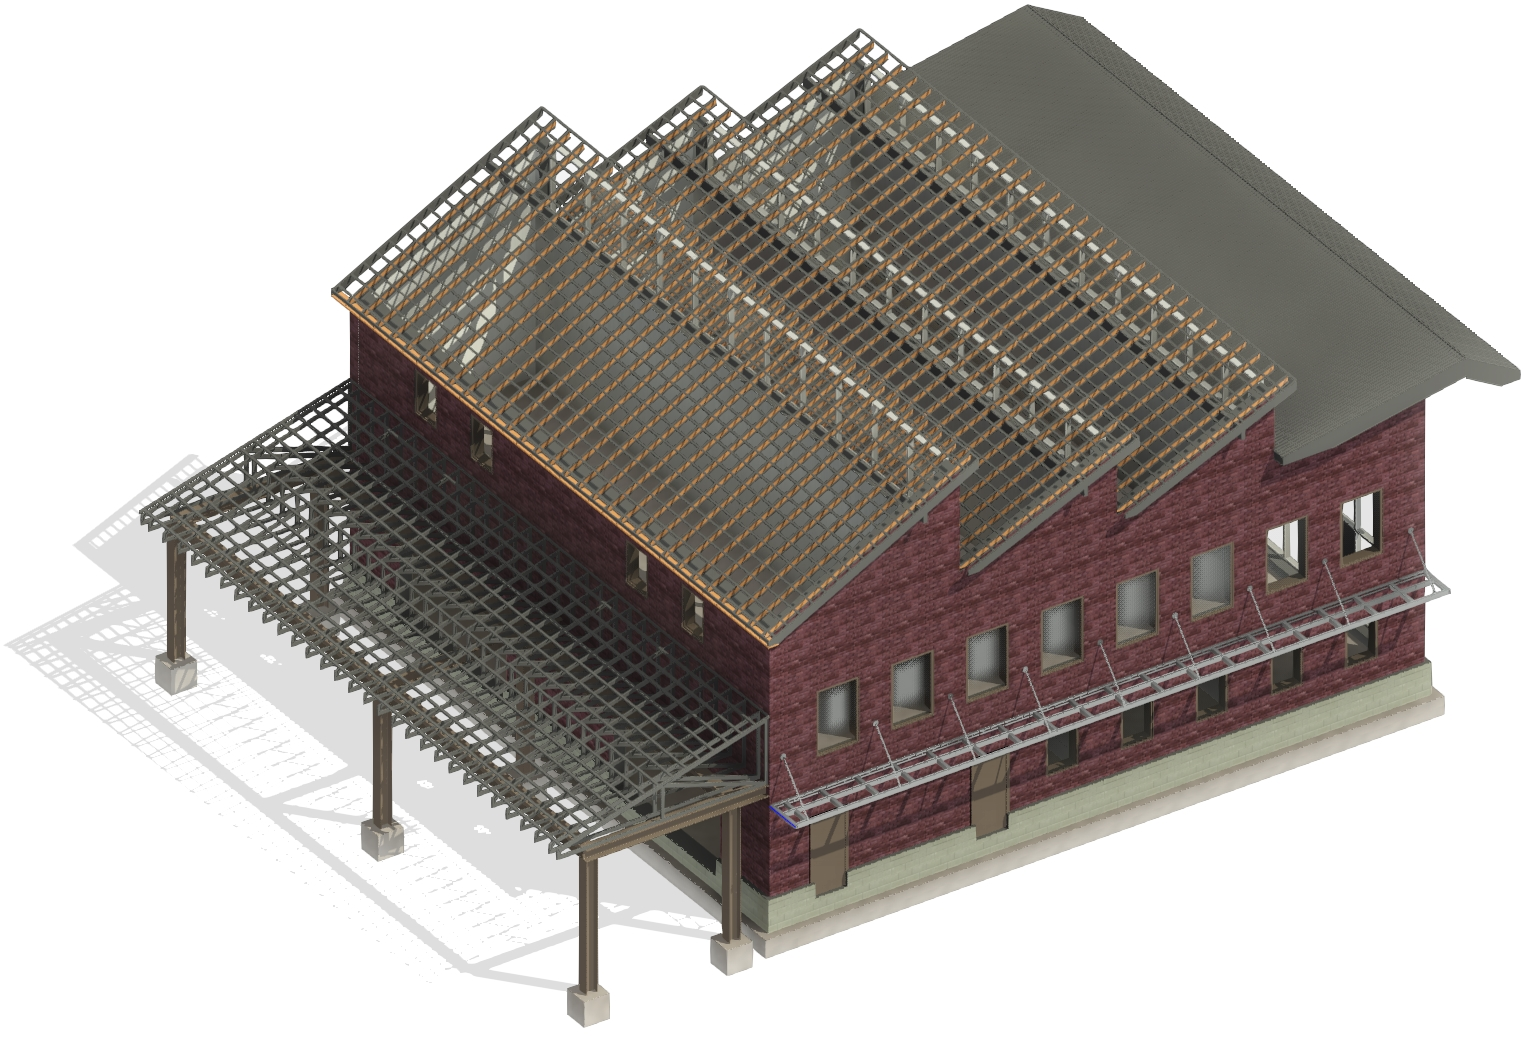 Mono-pitch roofs can use trusses, rafters, and prefabricated panels in Autodesk Revit using AGACAD Roof Framing BIM tools